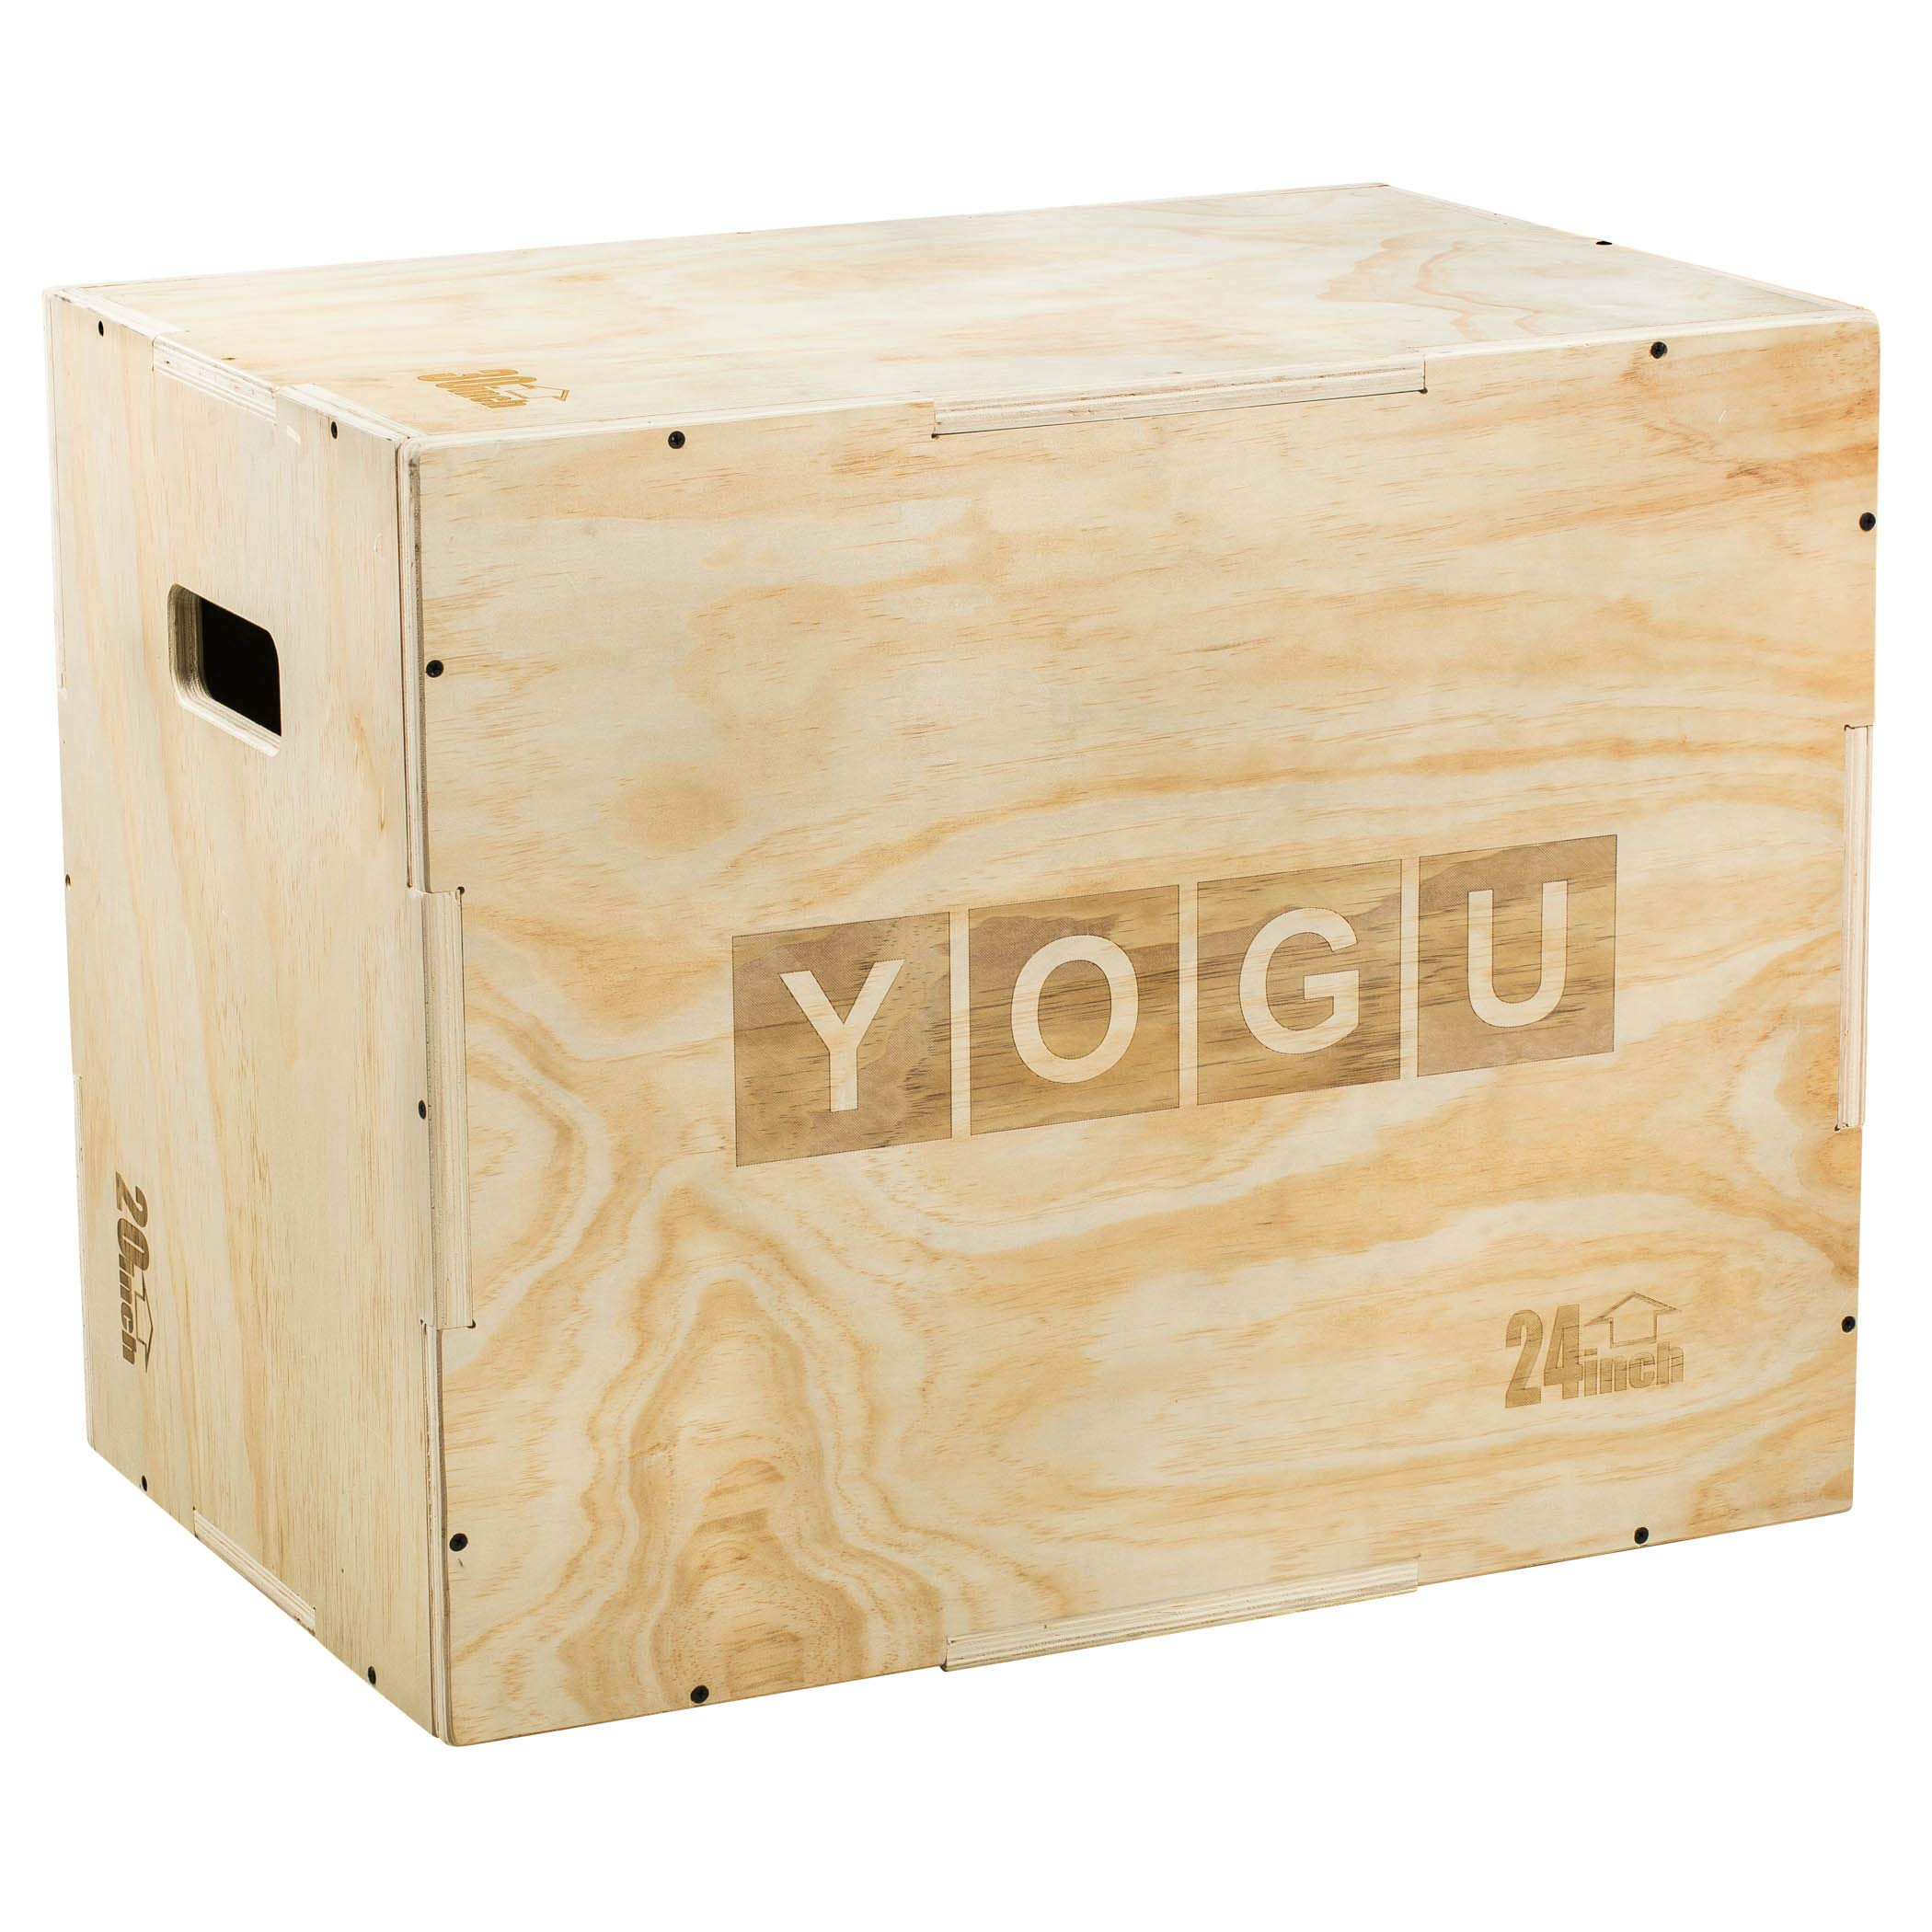 YOGU 3 in 1 Wood Plyometric Box (30/24/20)